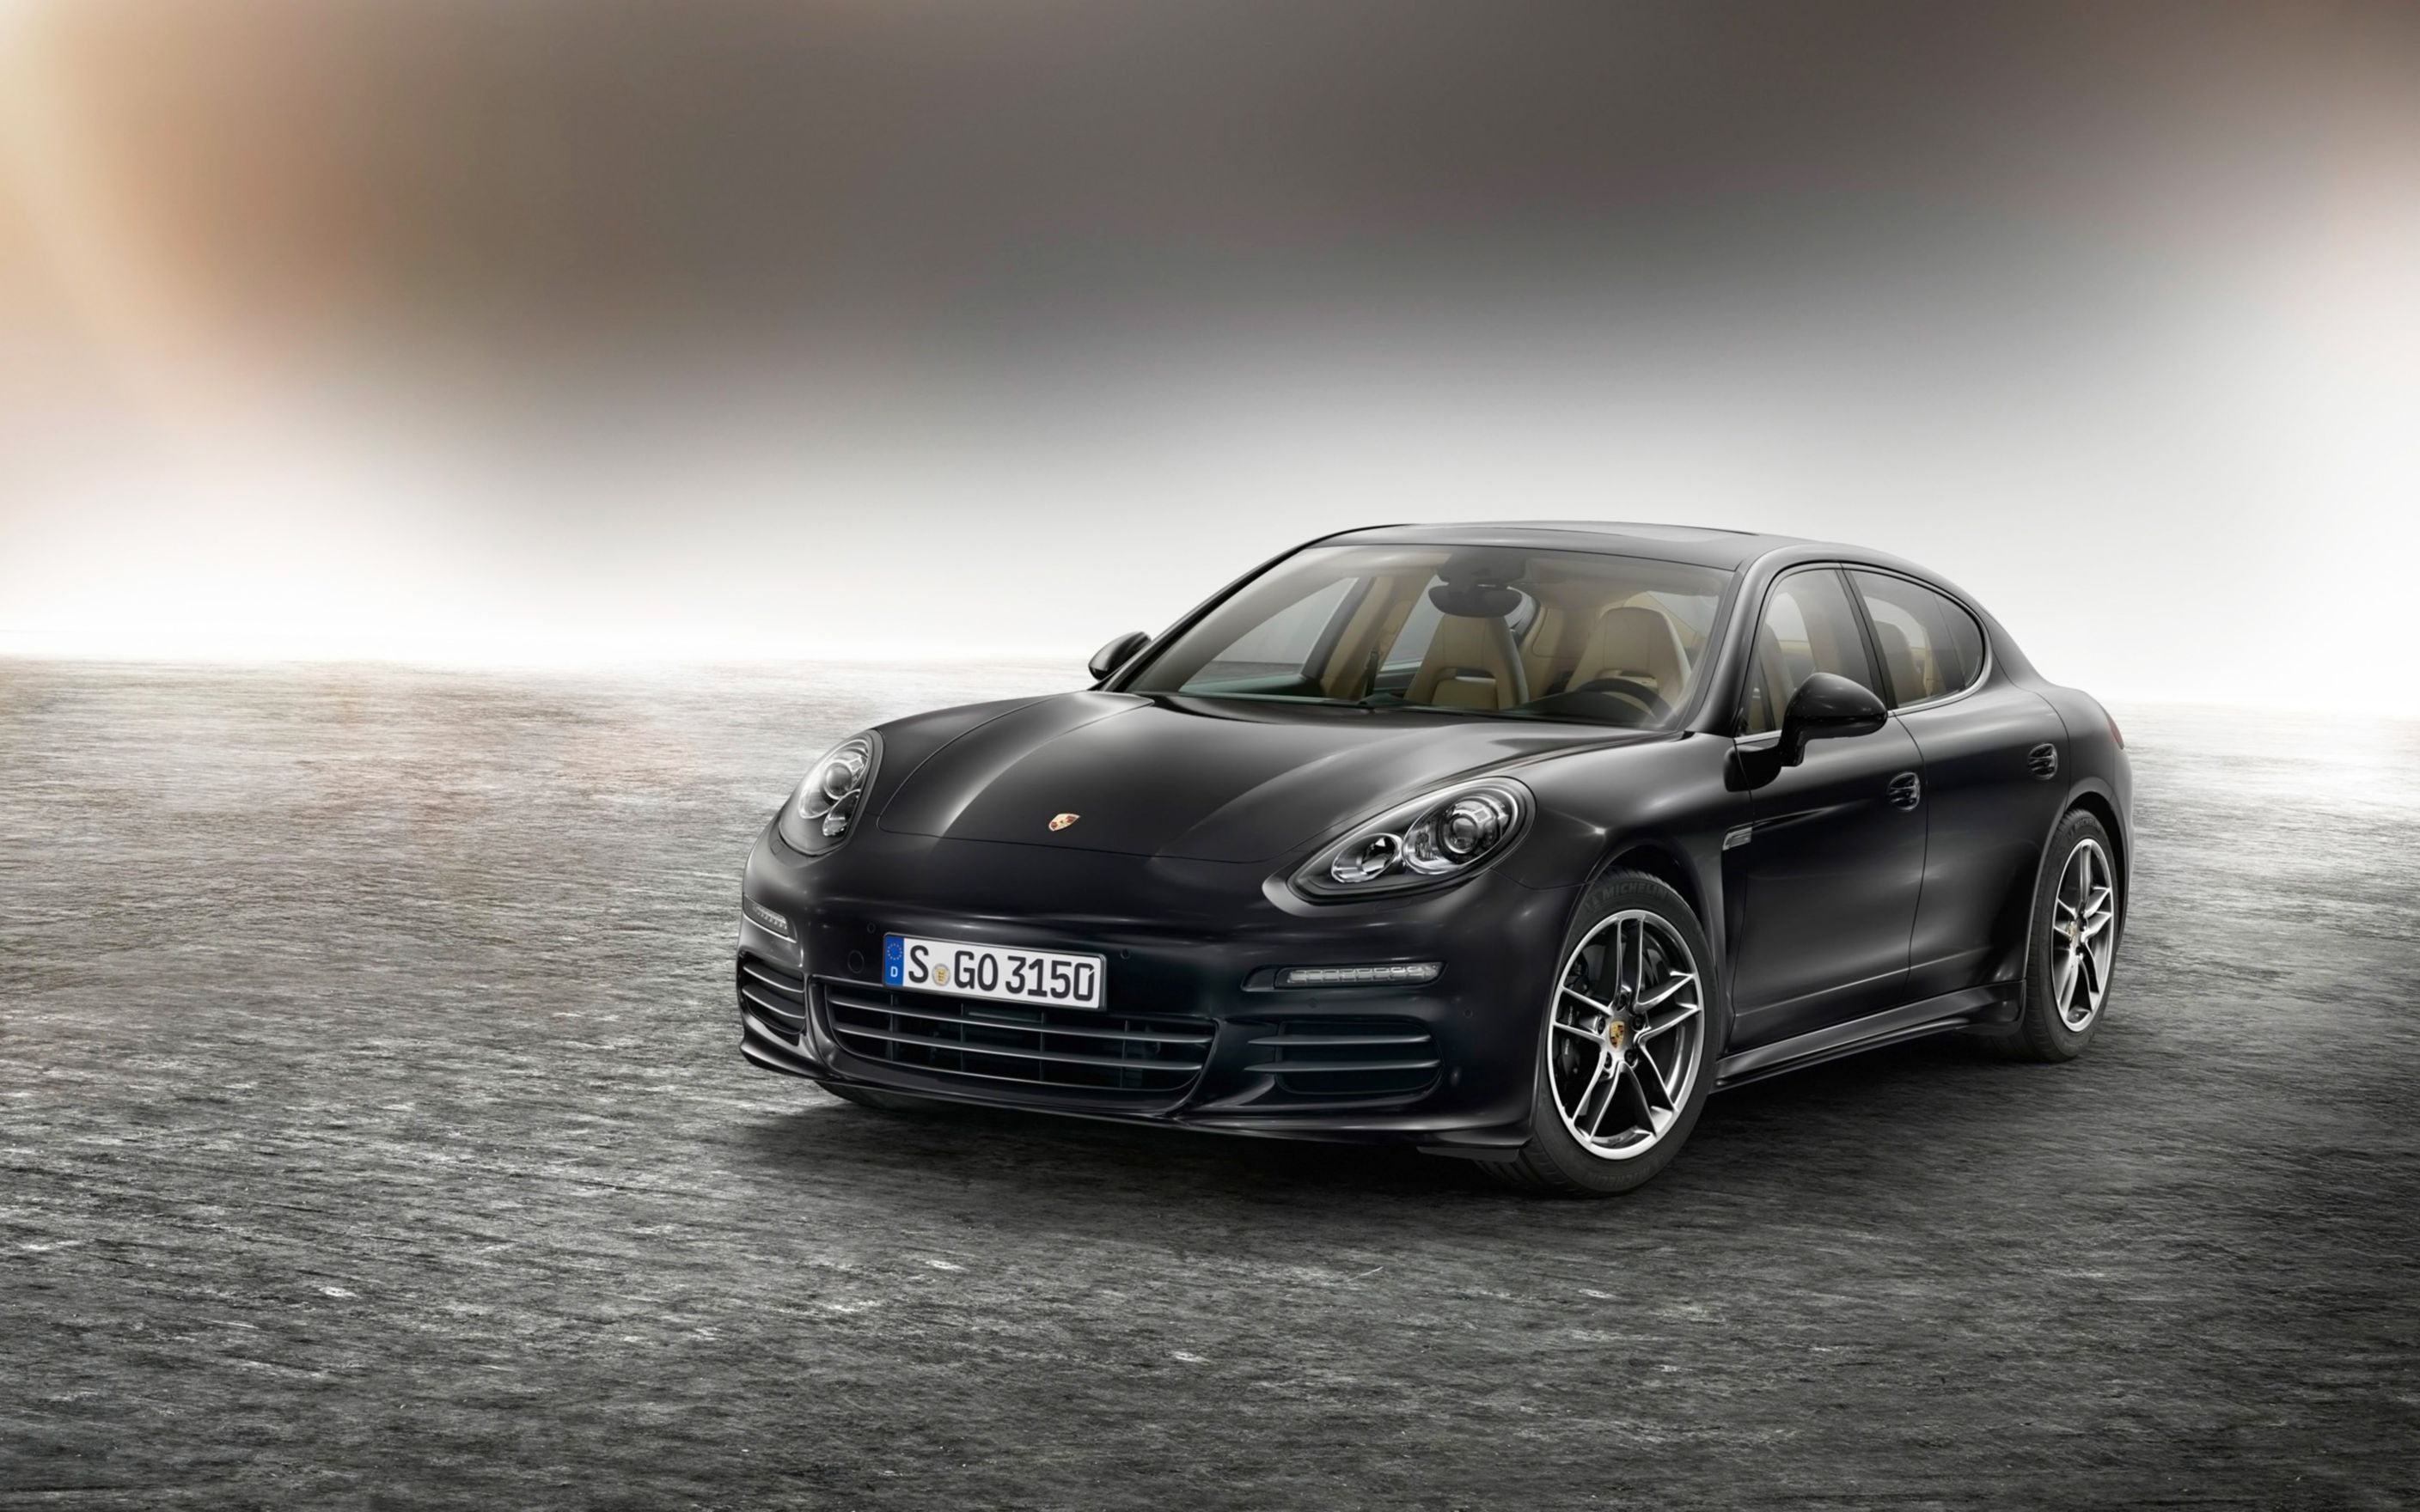 Download free HD 2015 Porsche Panamera Edition Wide Wallpaper, image